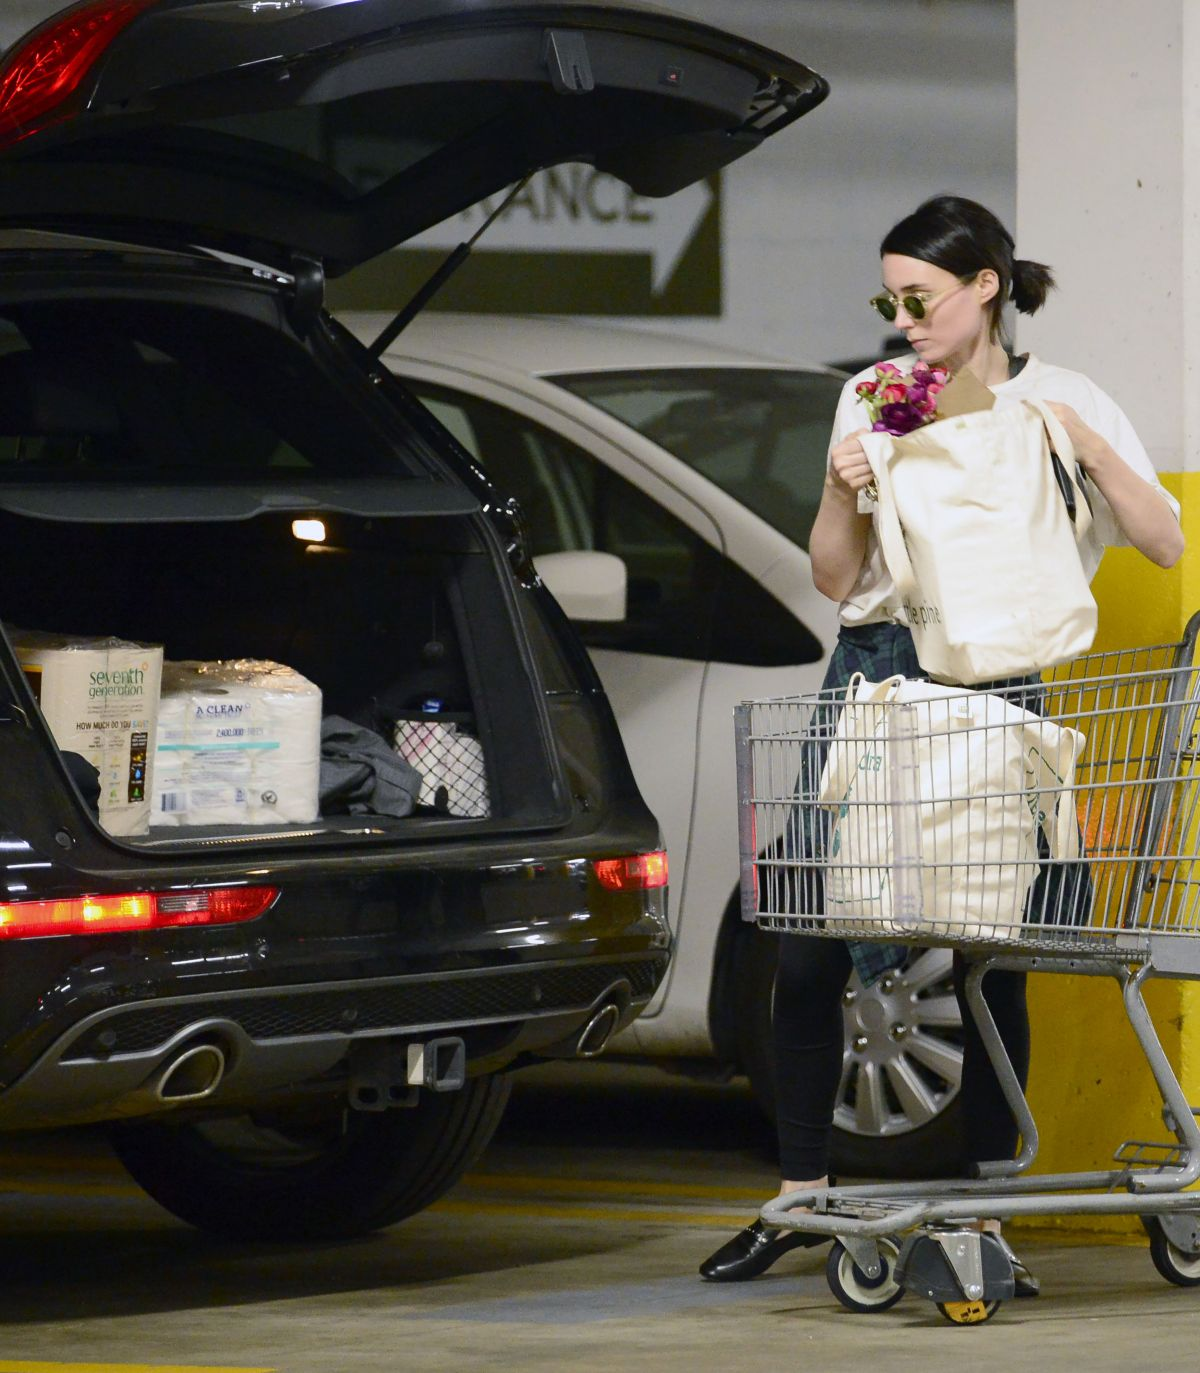 Grocery Stores Los Angeles: Rooney Mara Is Spotted Grocery Shopping At A Health Food